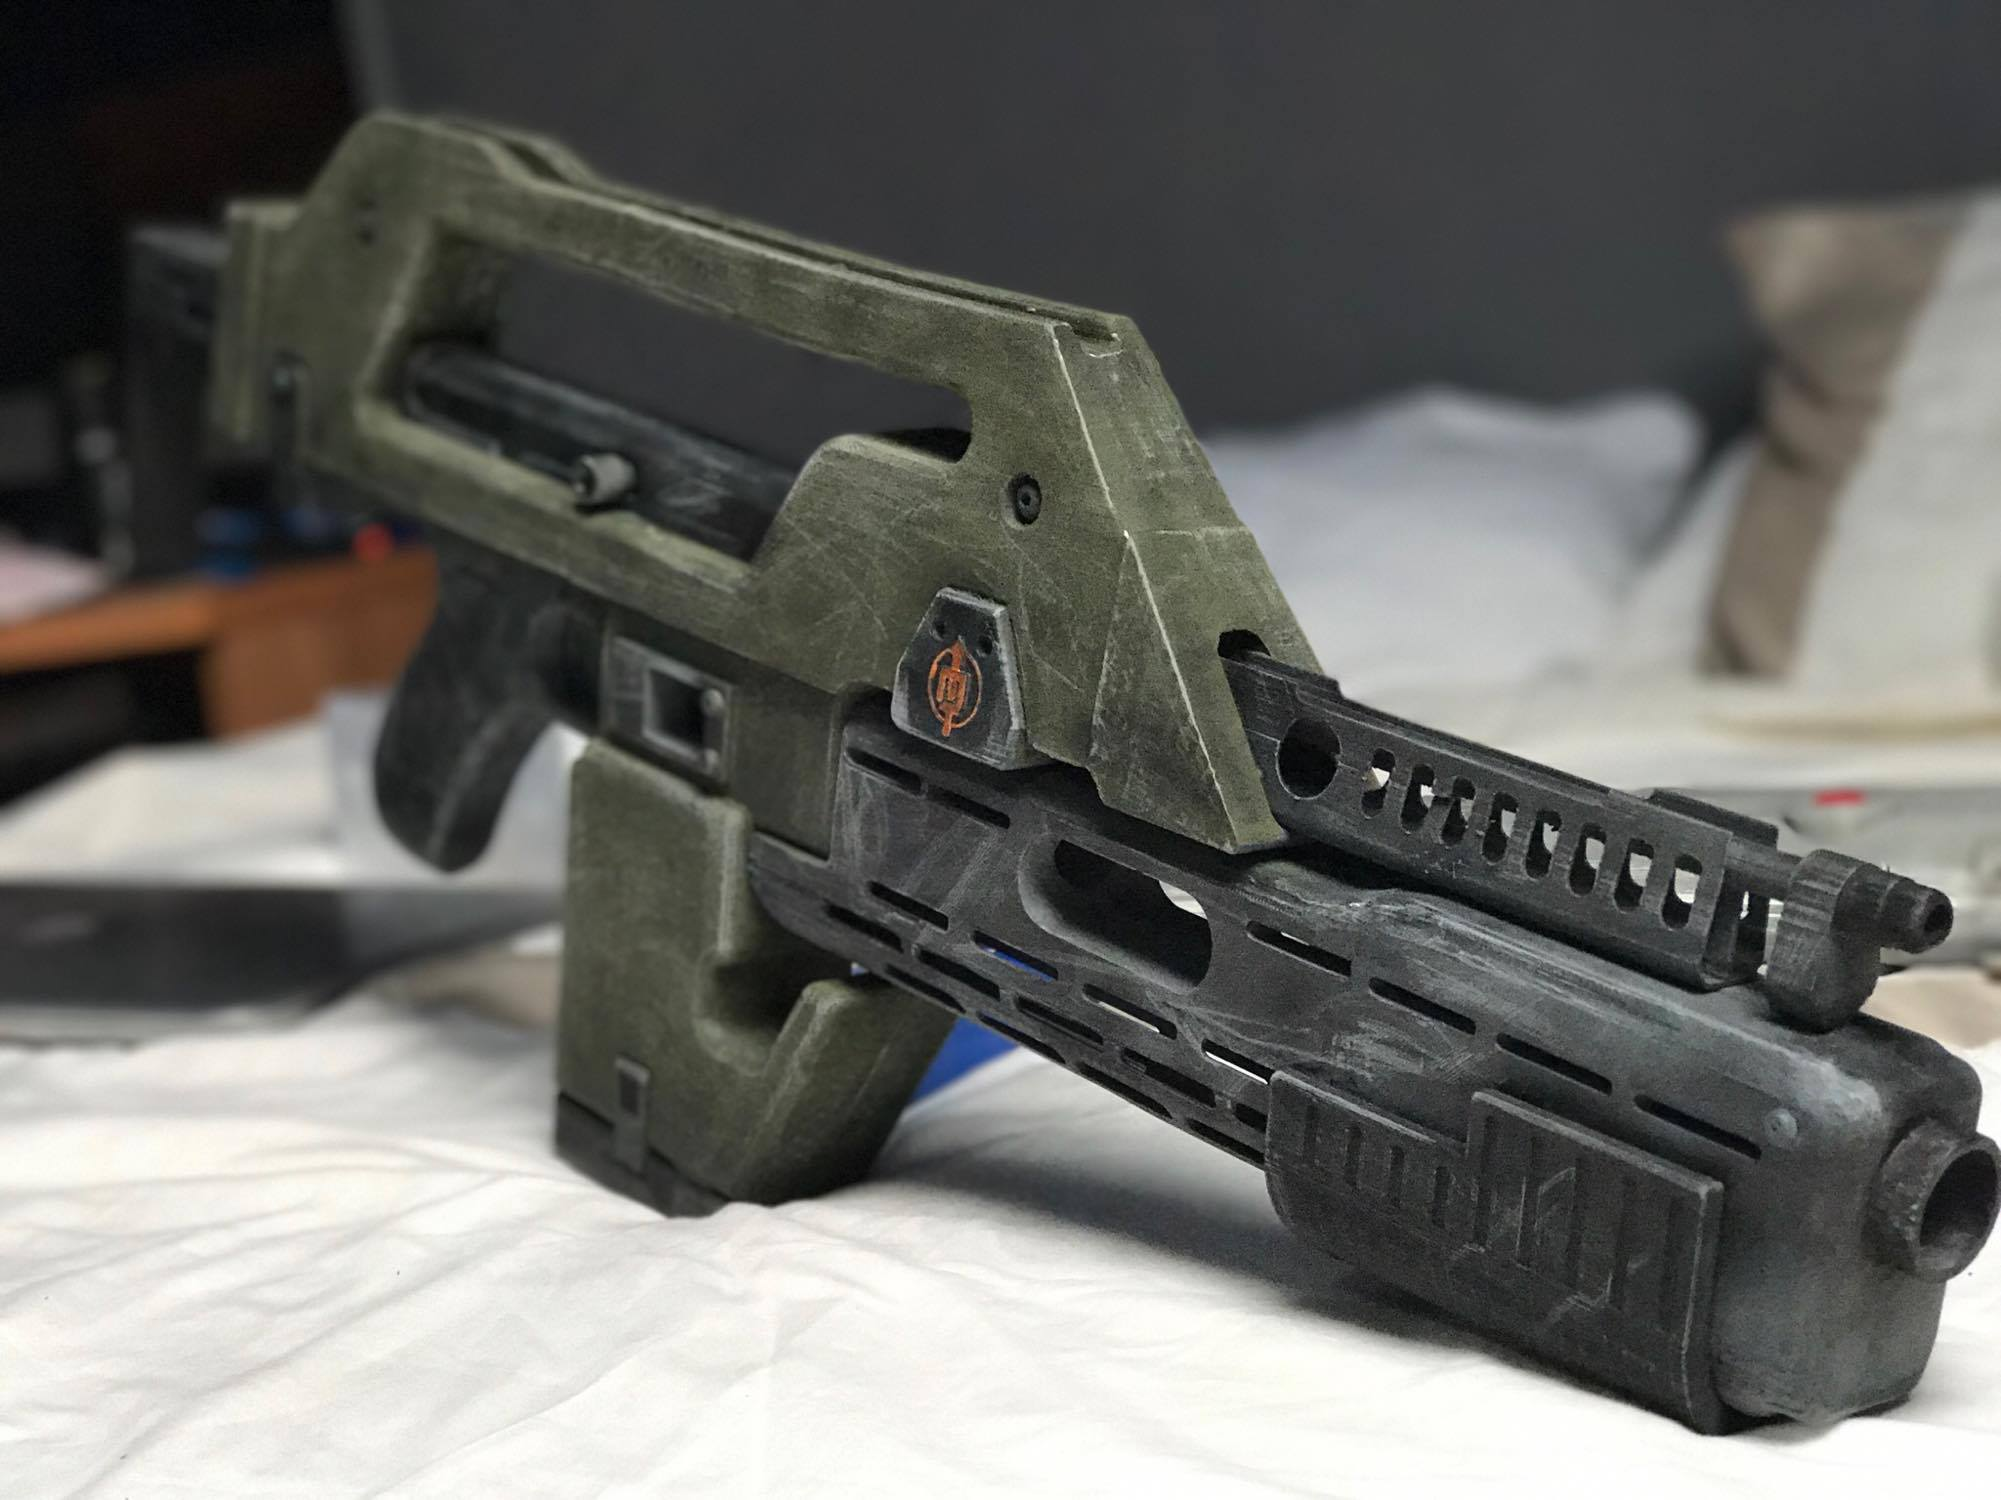 Alien Pulse Rifle